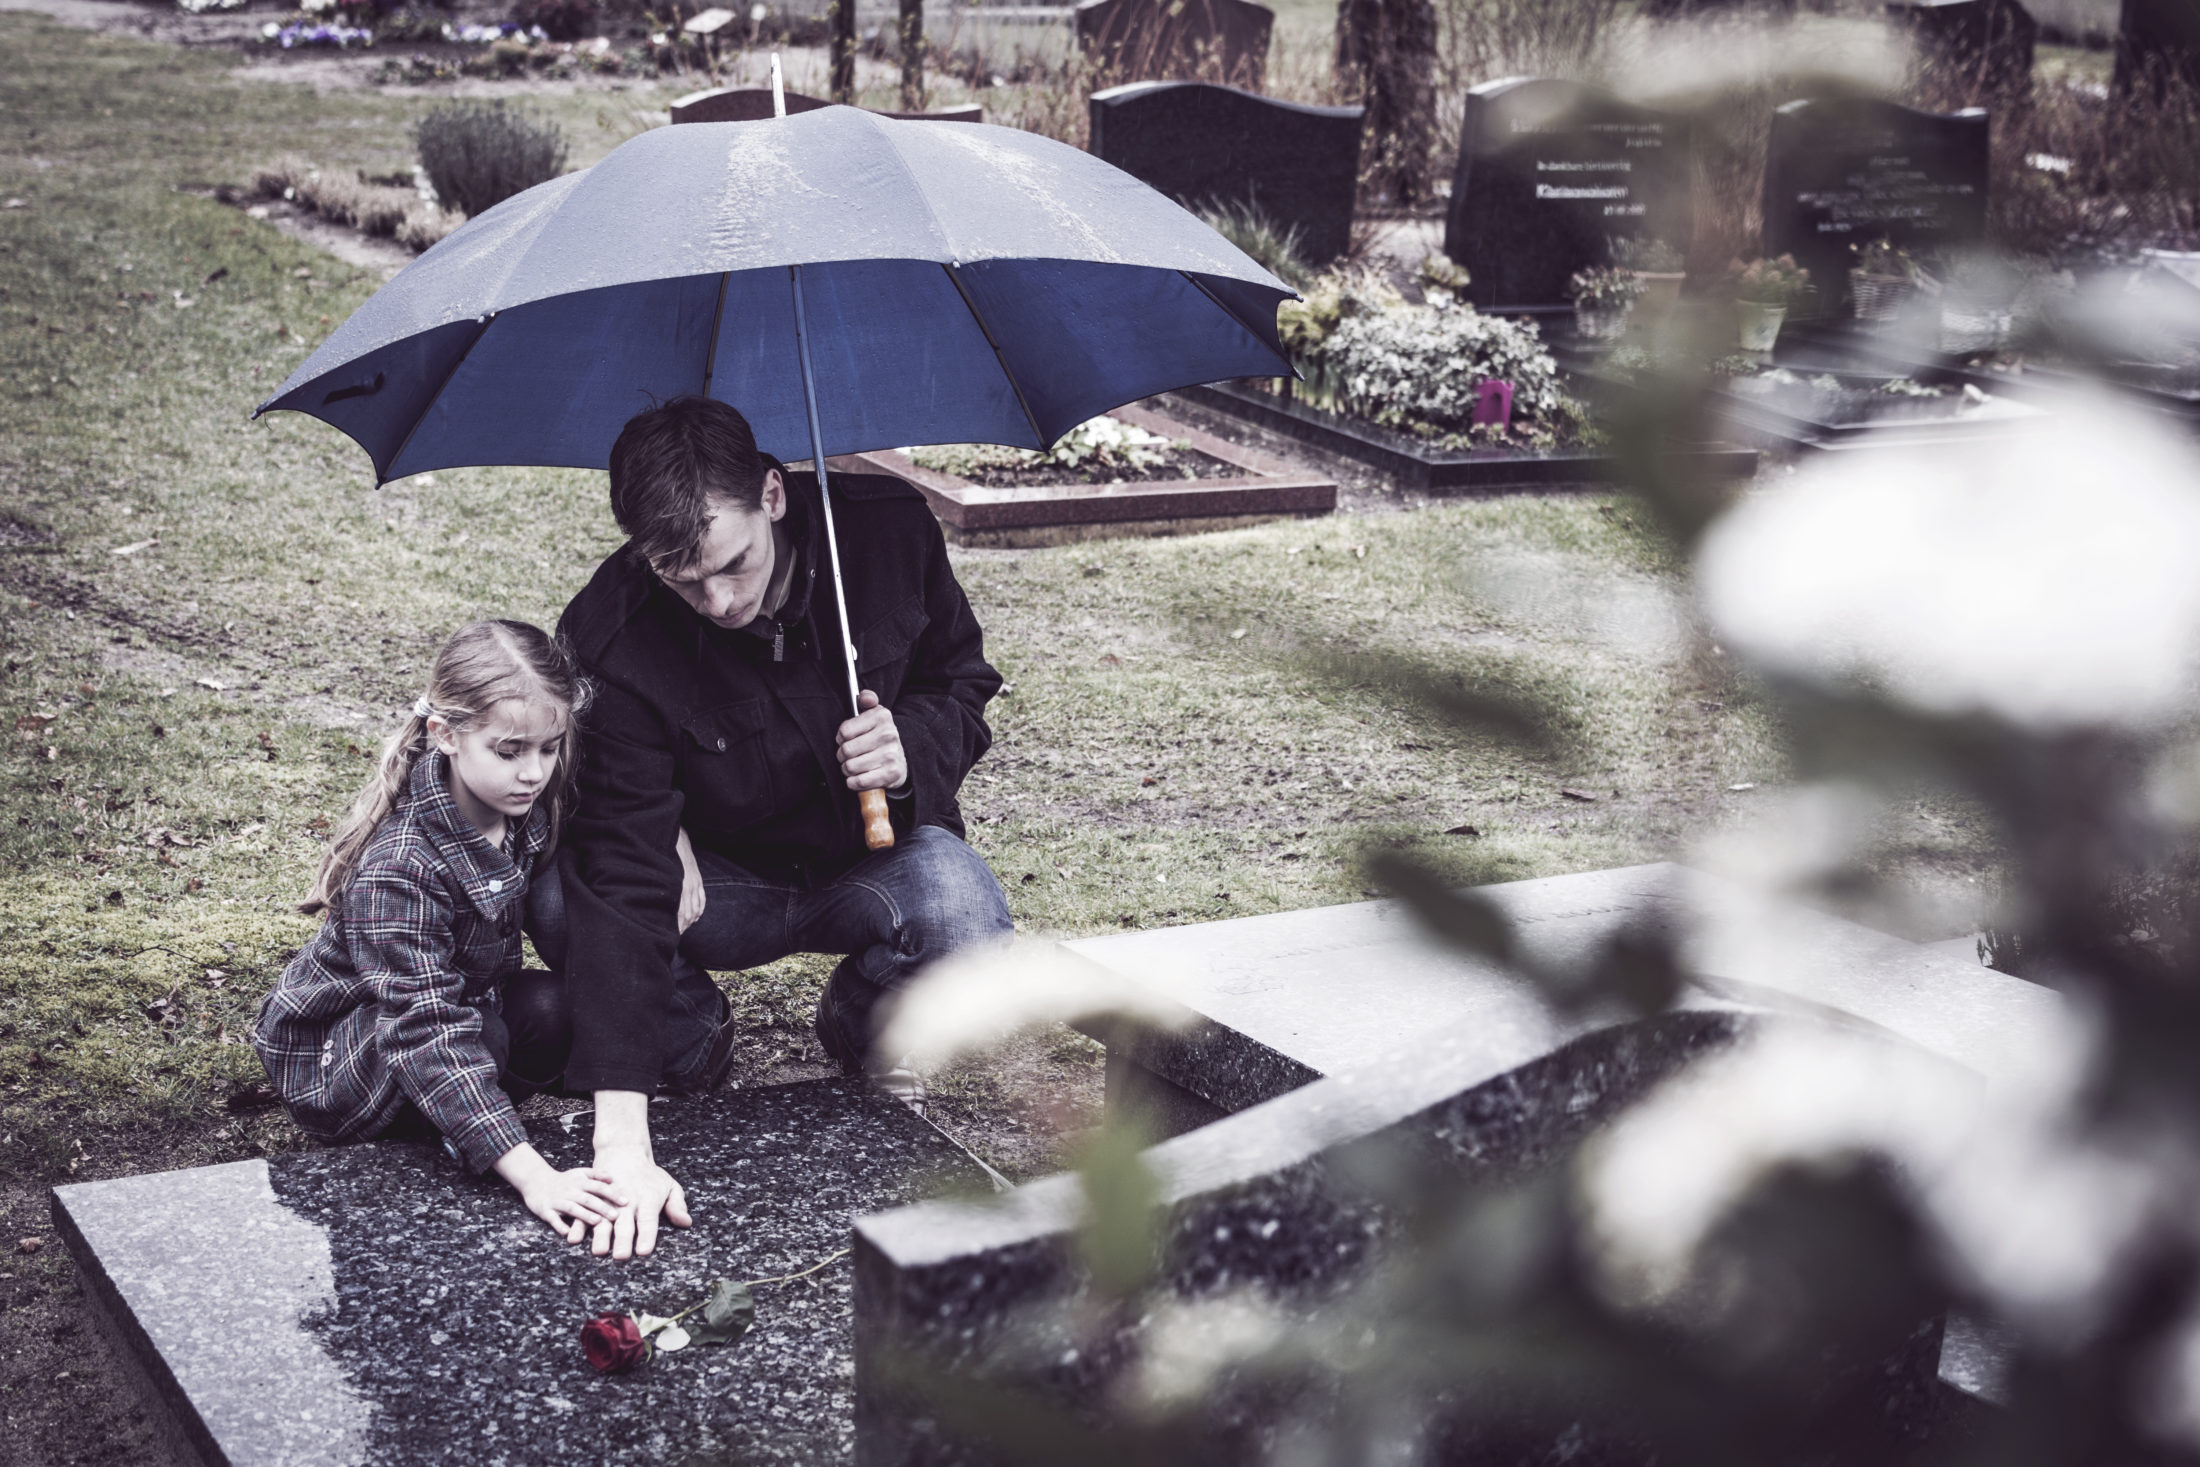 family grieving the wrongful death of a loved one in South Carolina